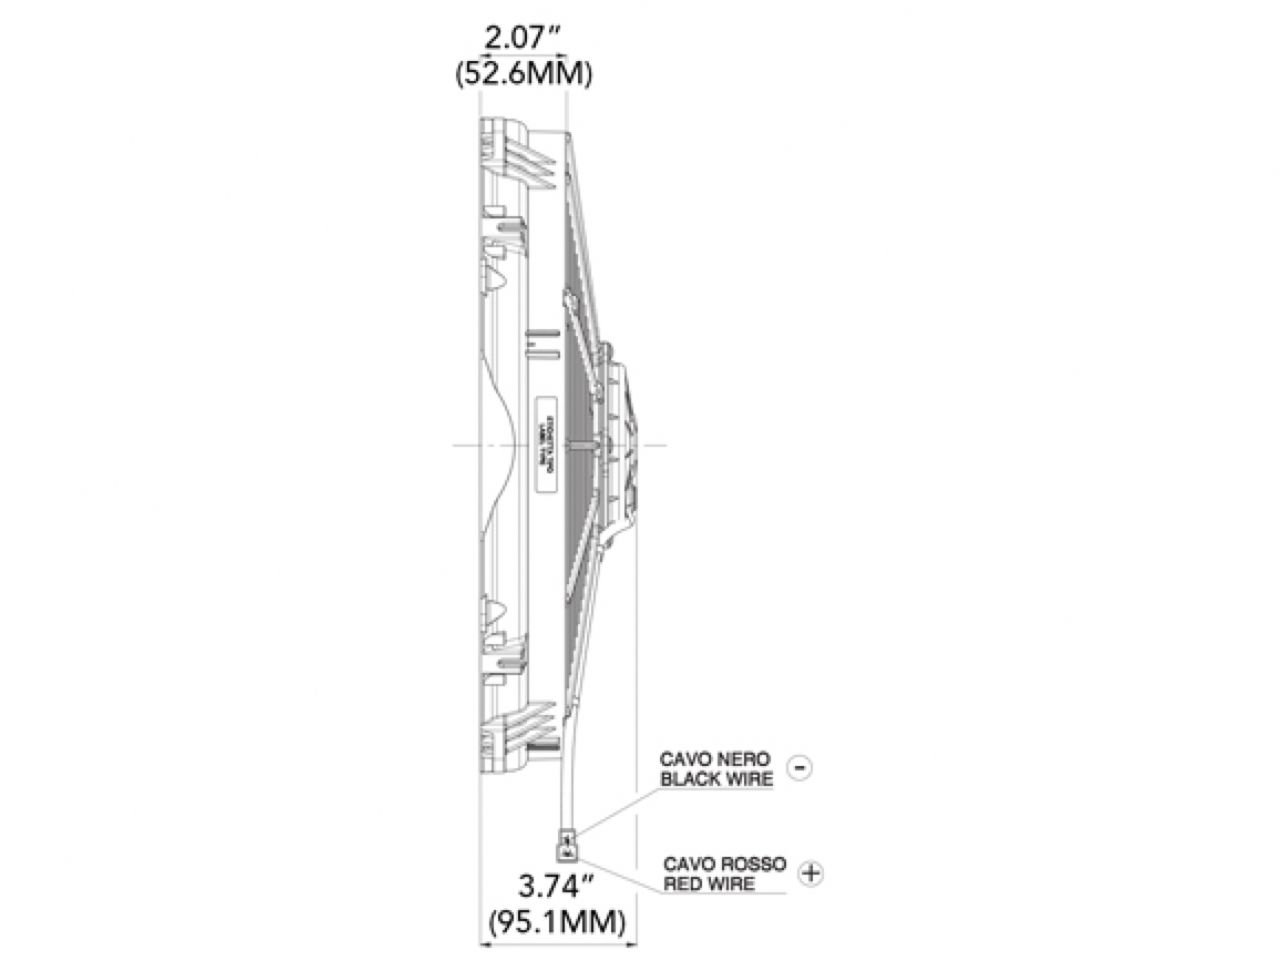 wiring diagram for spal 30102120 wiring diagram library wiring diagrams for heater fan amazon com spal 30102082 puller fan (16in high performance ; paddle wiring diagram for spal 30102120